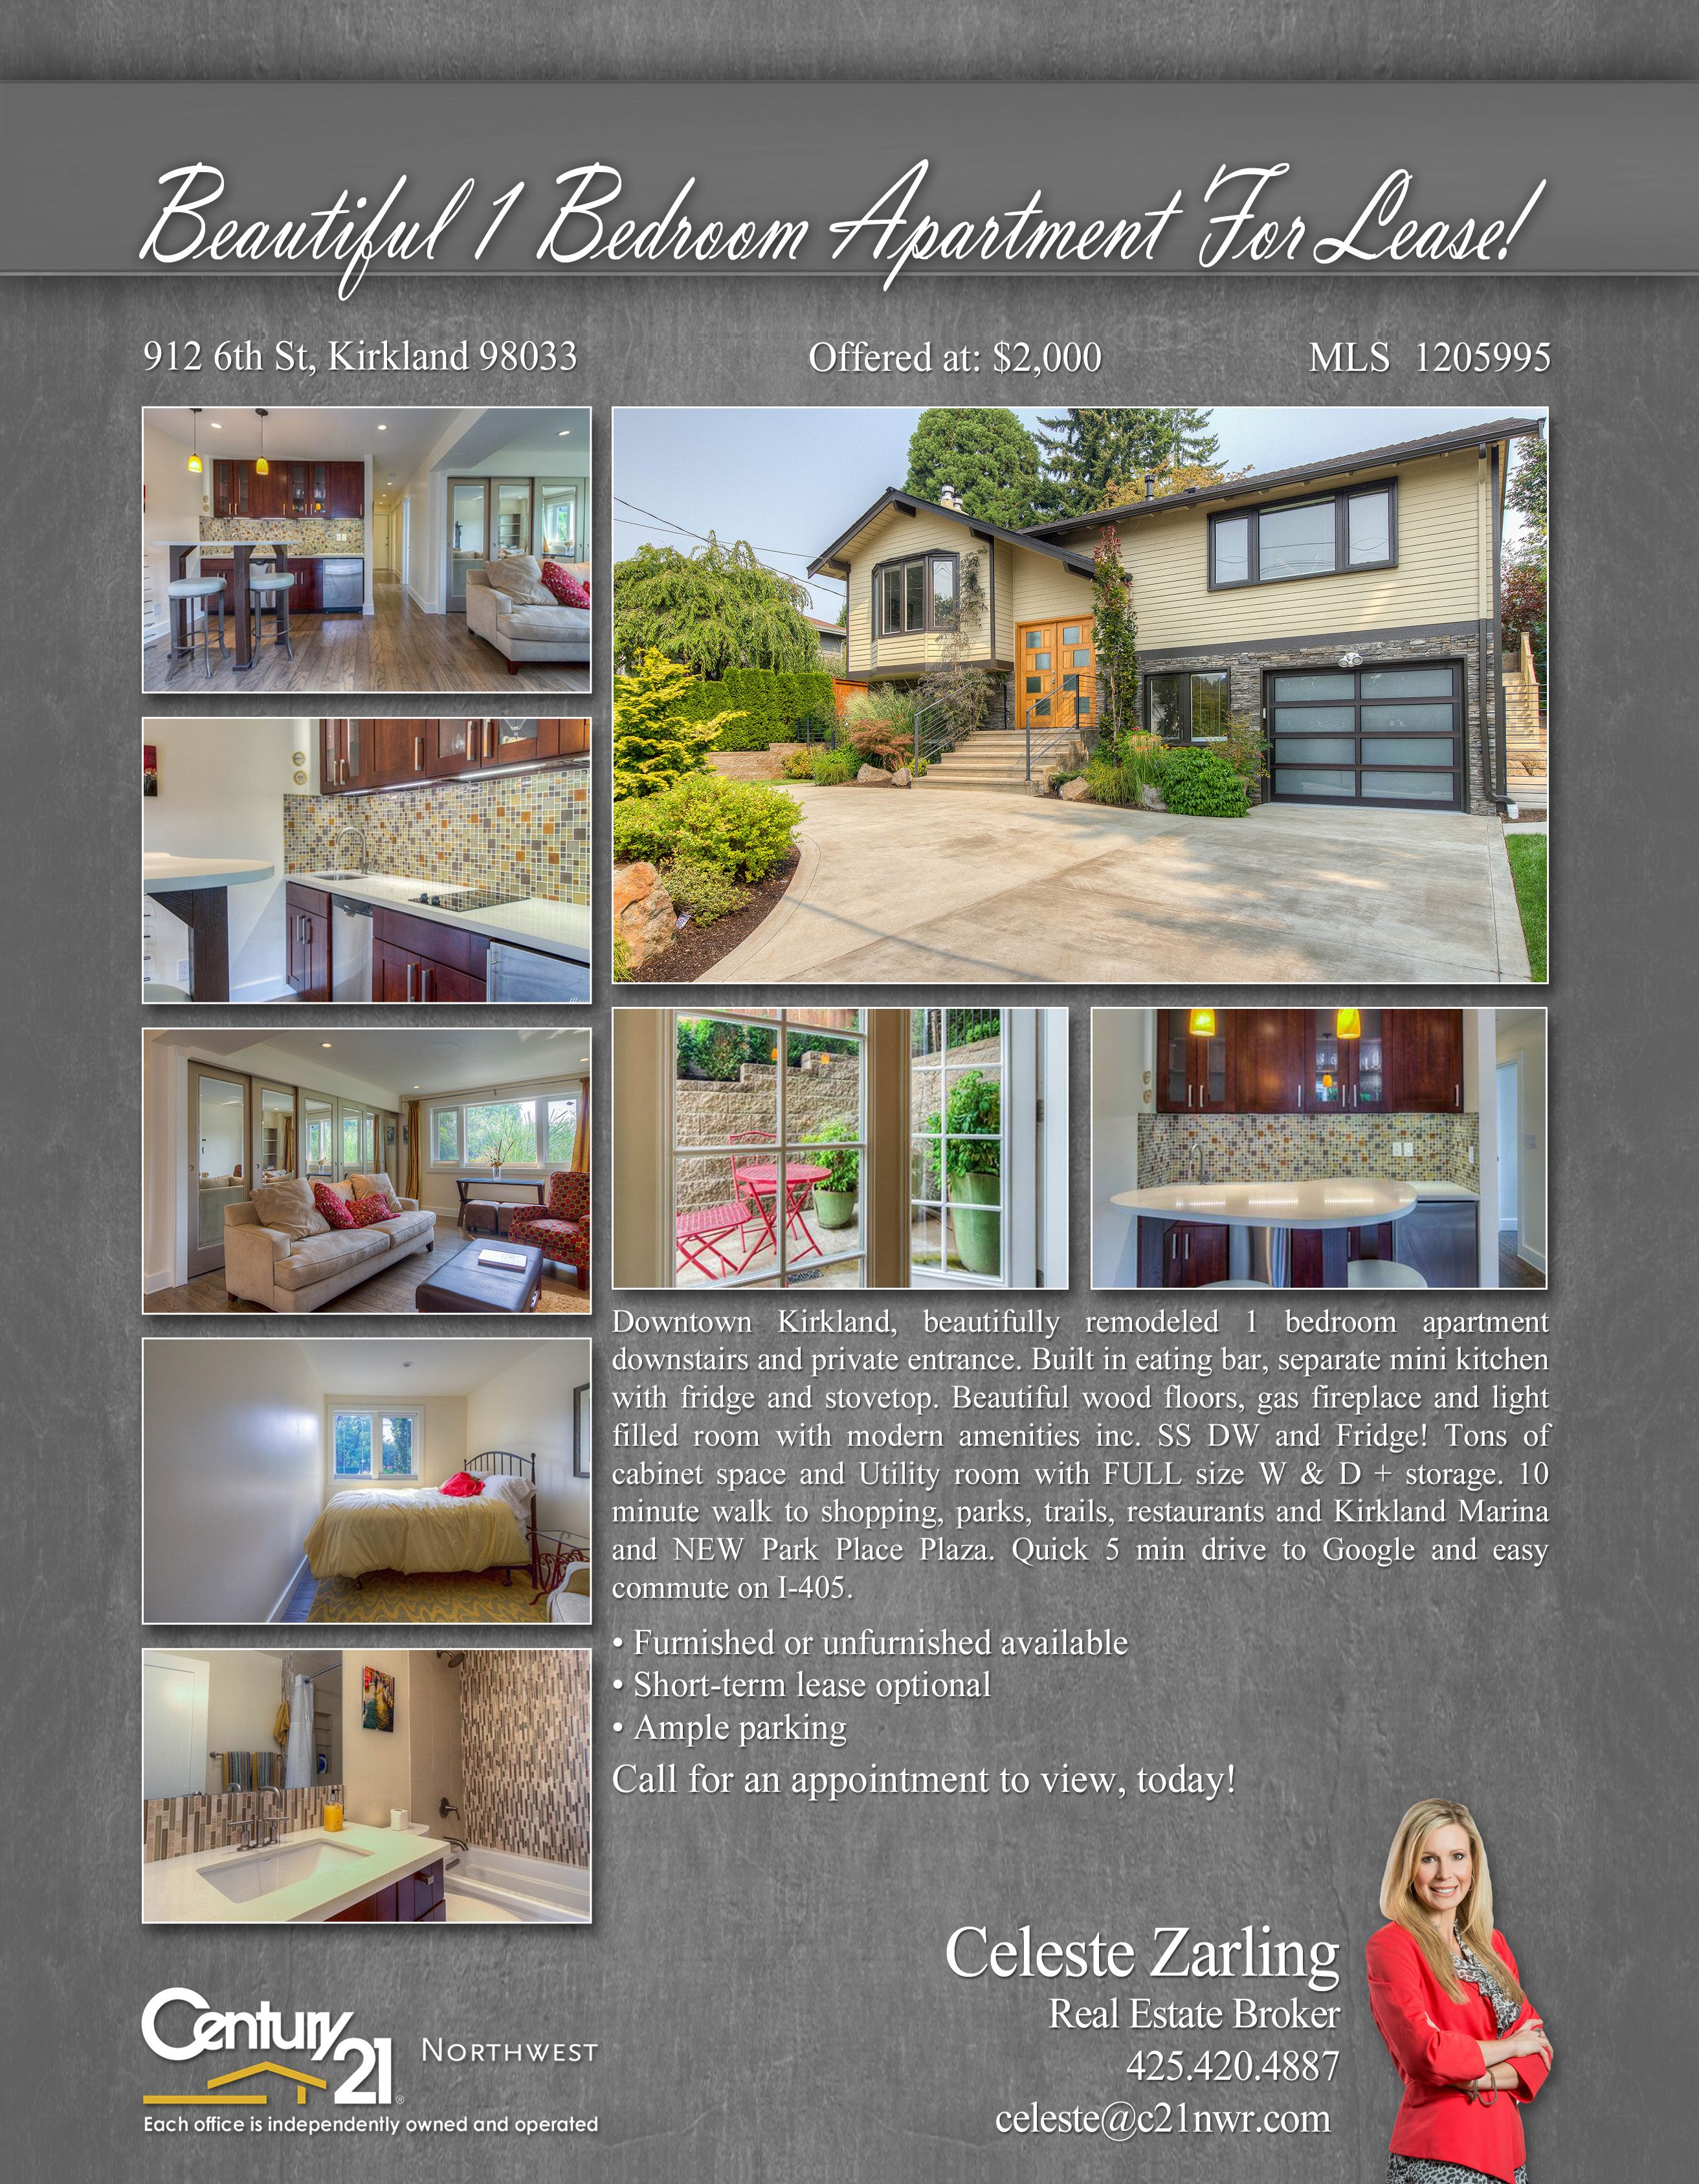 NEWLISTING Downtown Kirkland, beautifully remodeled 1 bedroom ...